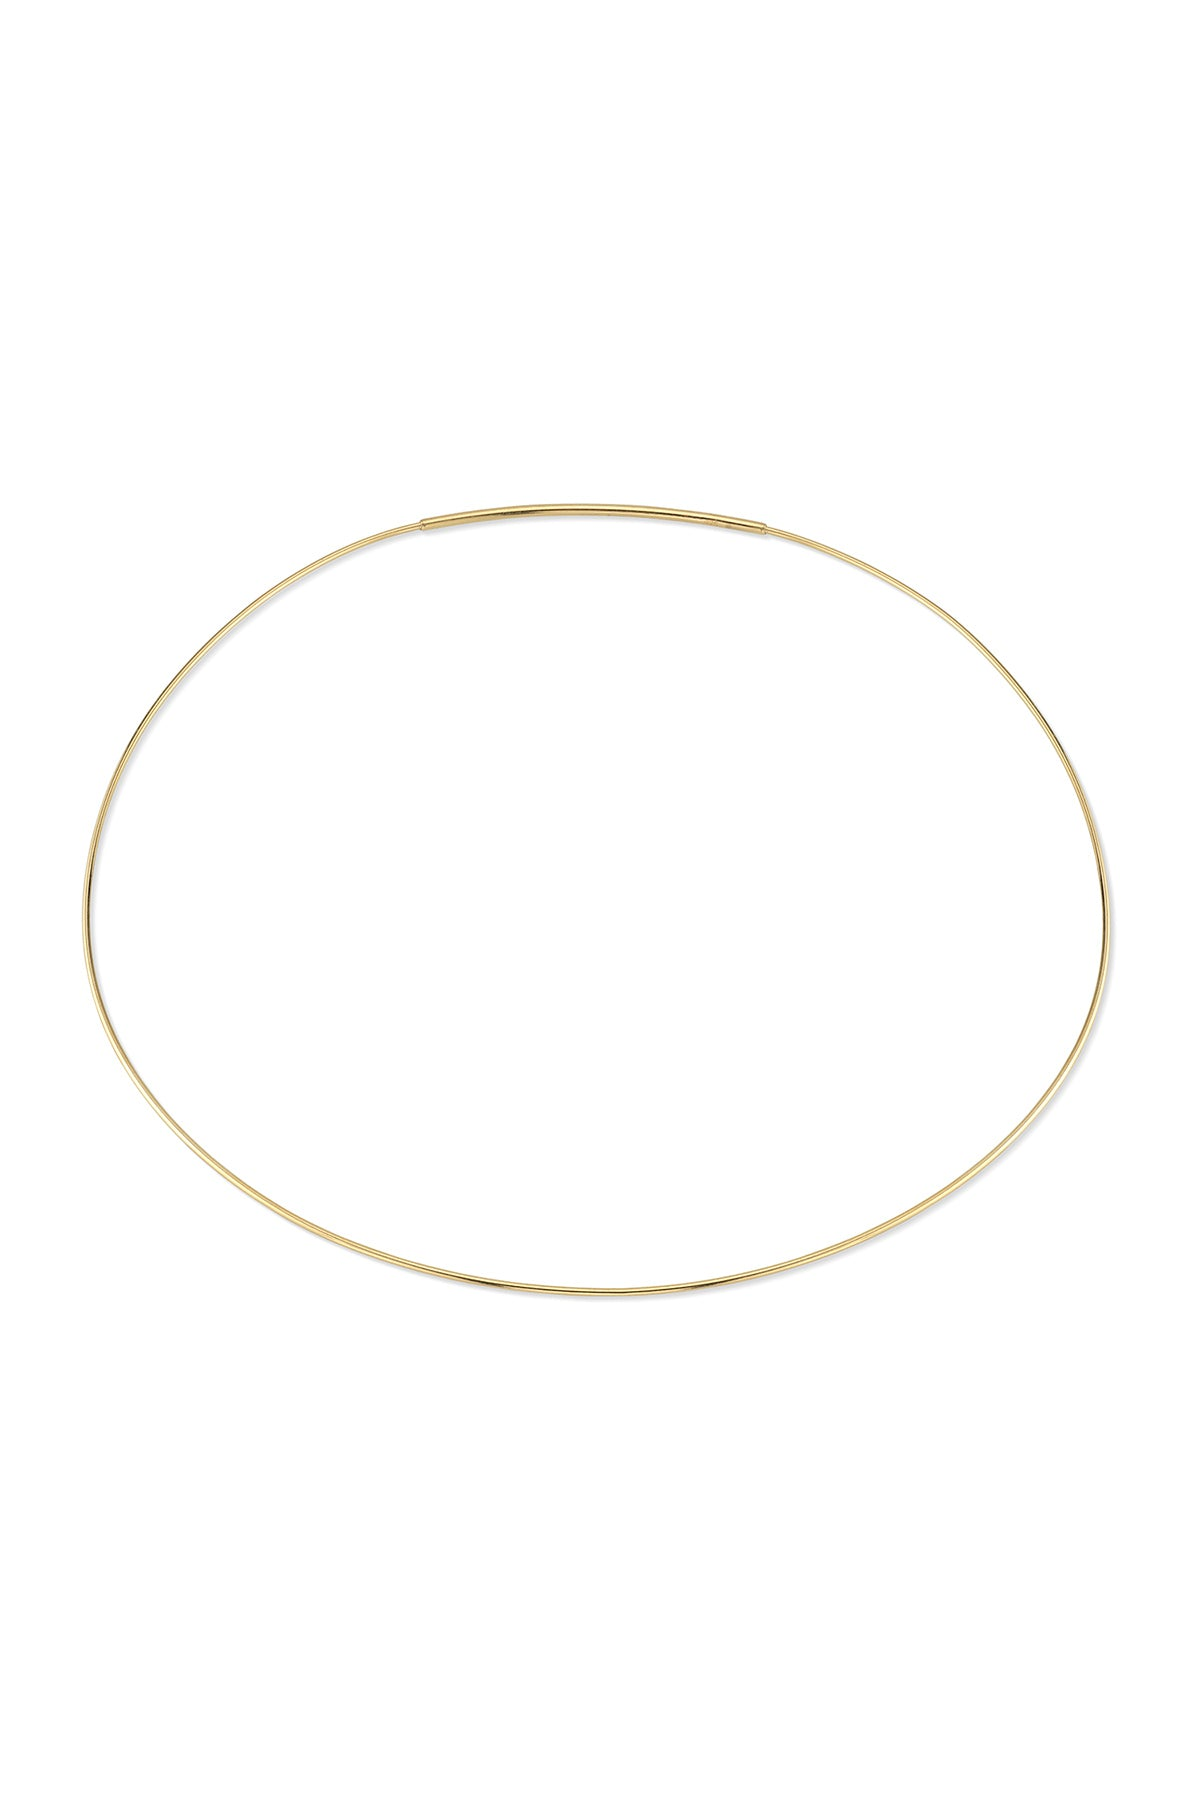 CRESCENT COLLAR IN GOLD BY SLOAN